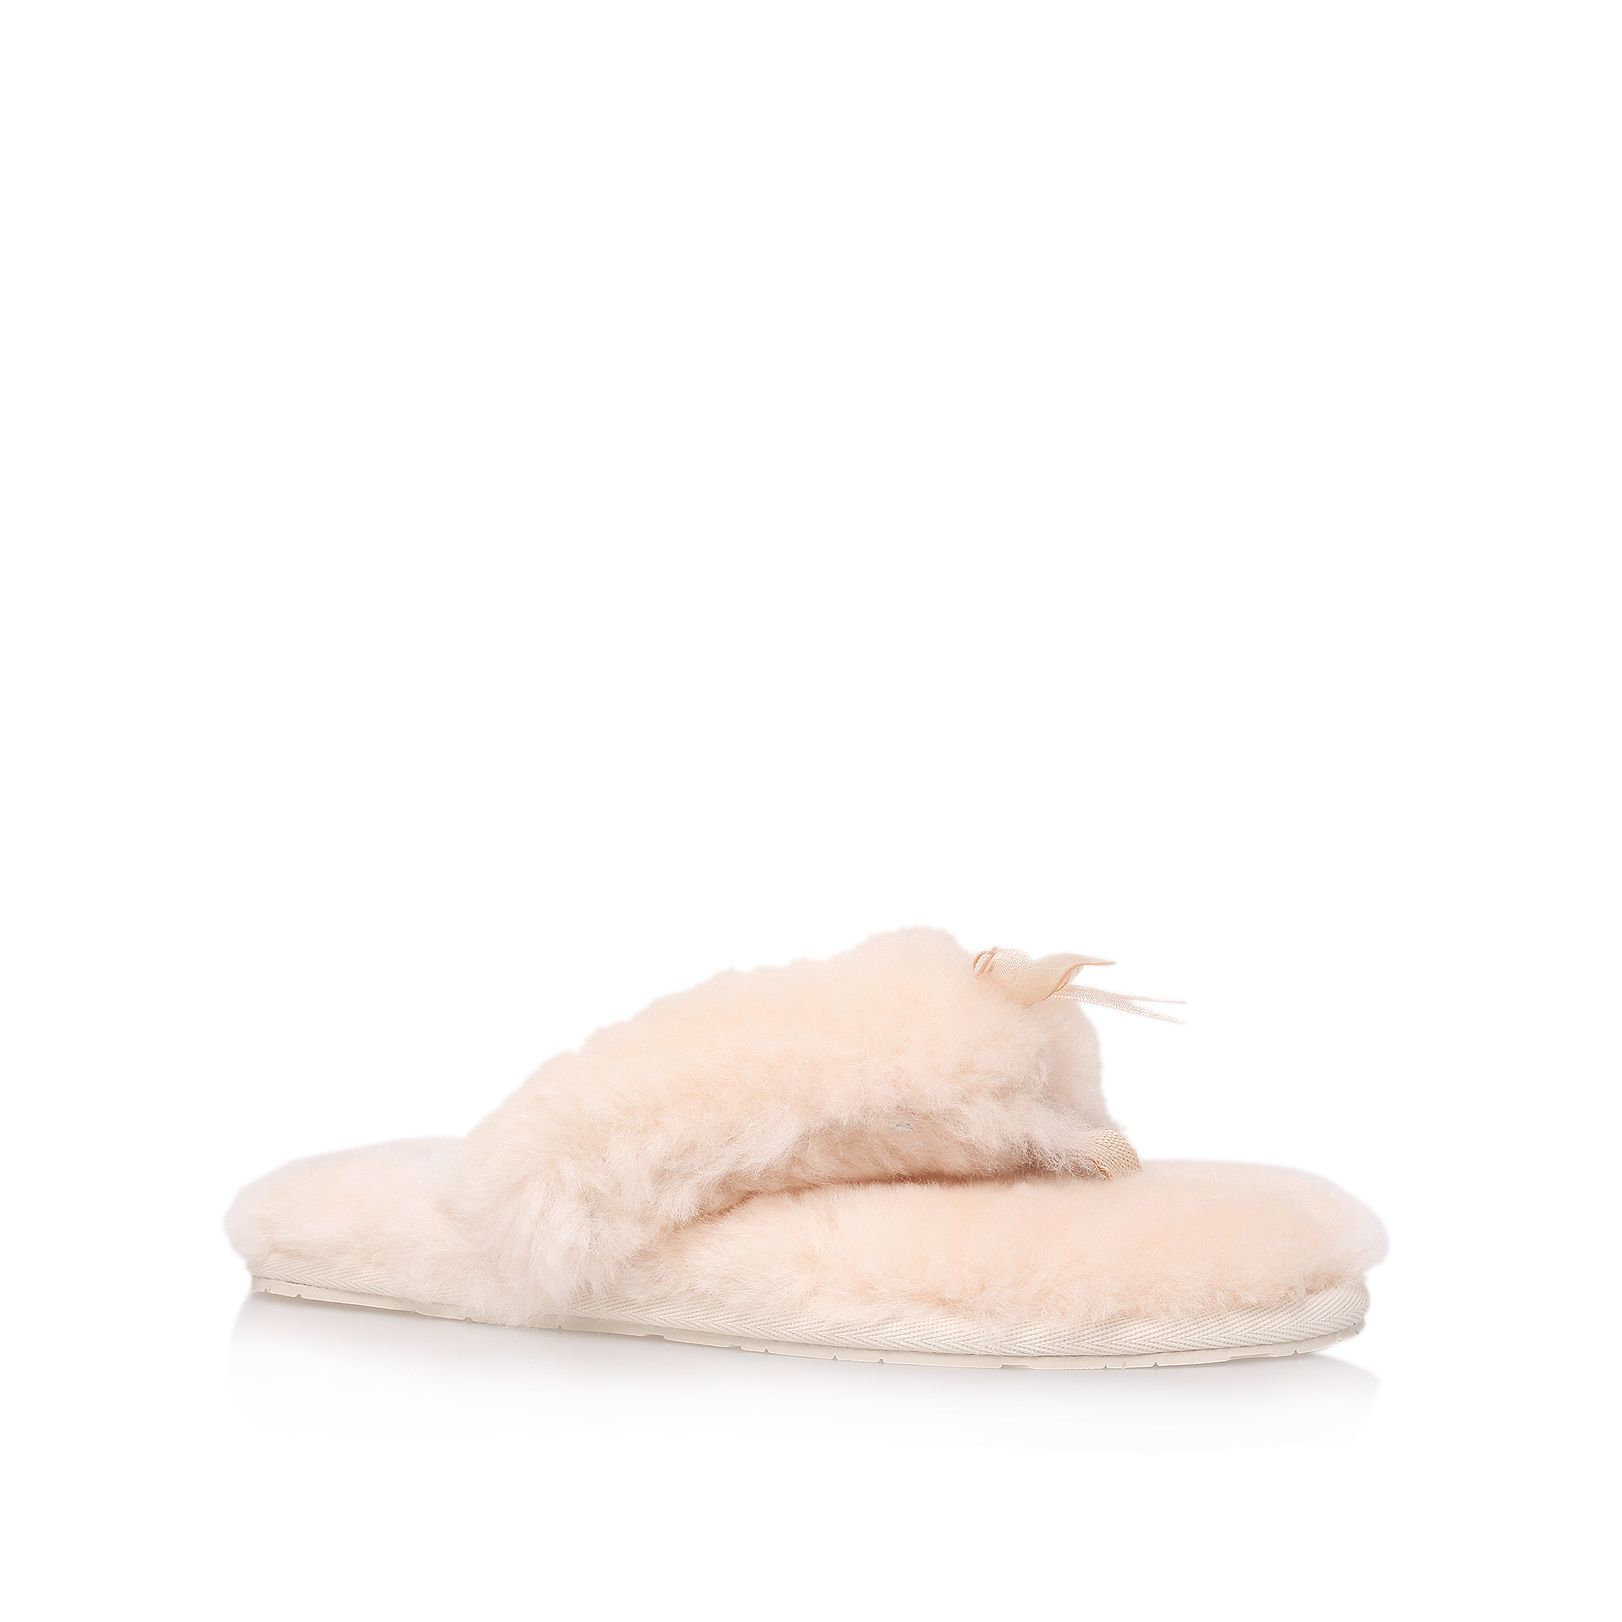 Ugg Fluff Flip Flop Style Slippers in Natural